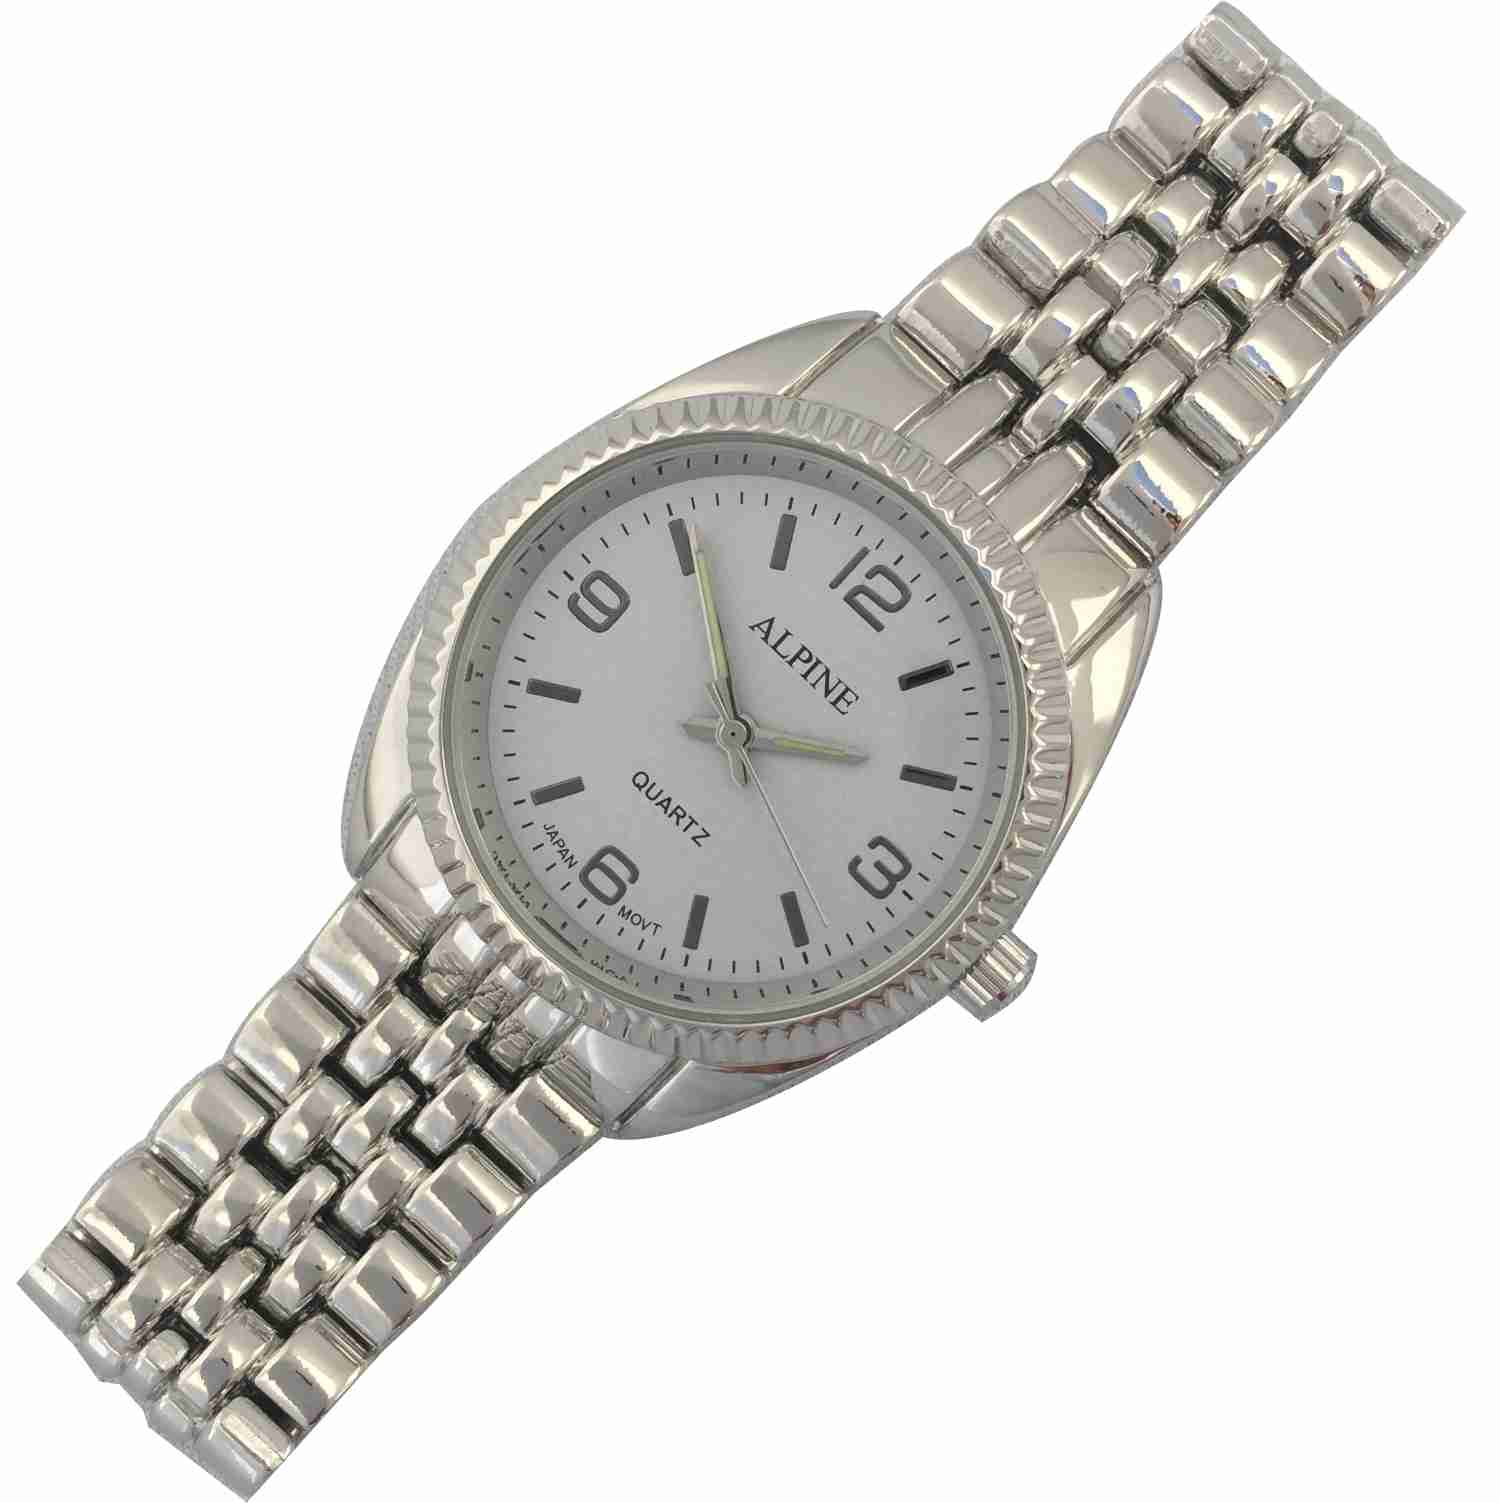 Mens Bracelet Watch - Silver/White Dial